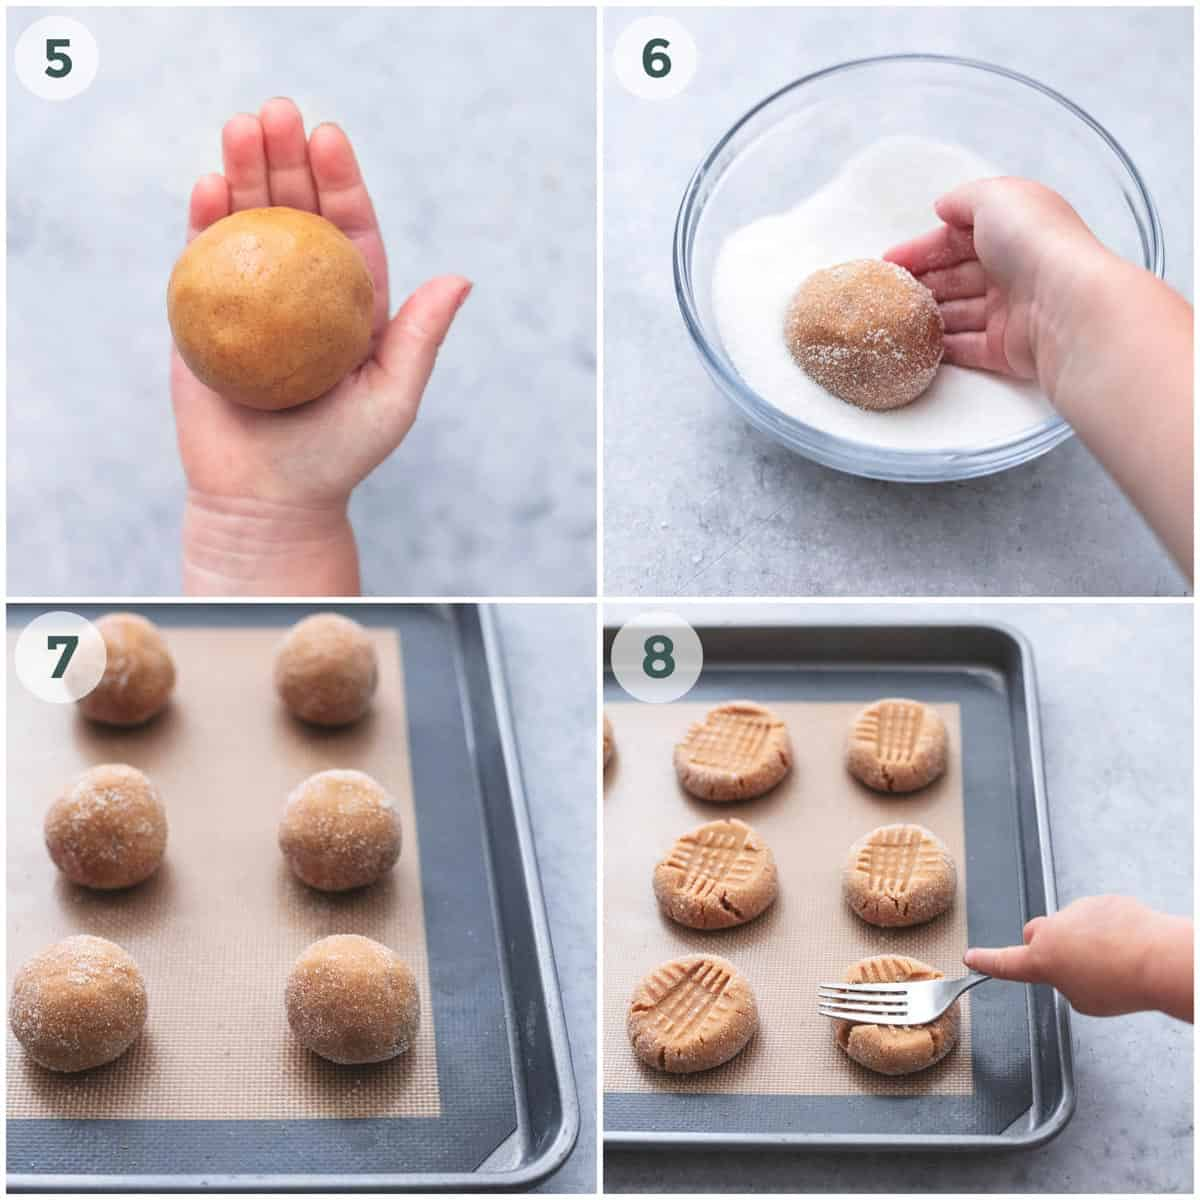 four steps for rolling and smashing peanut butter cookies before baking